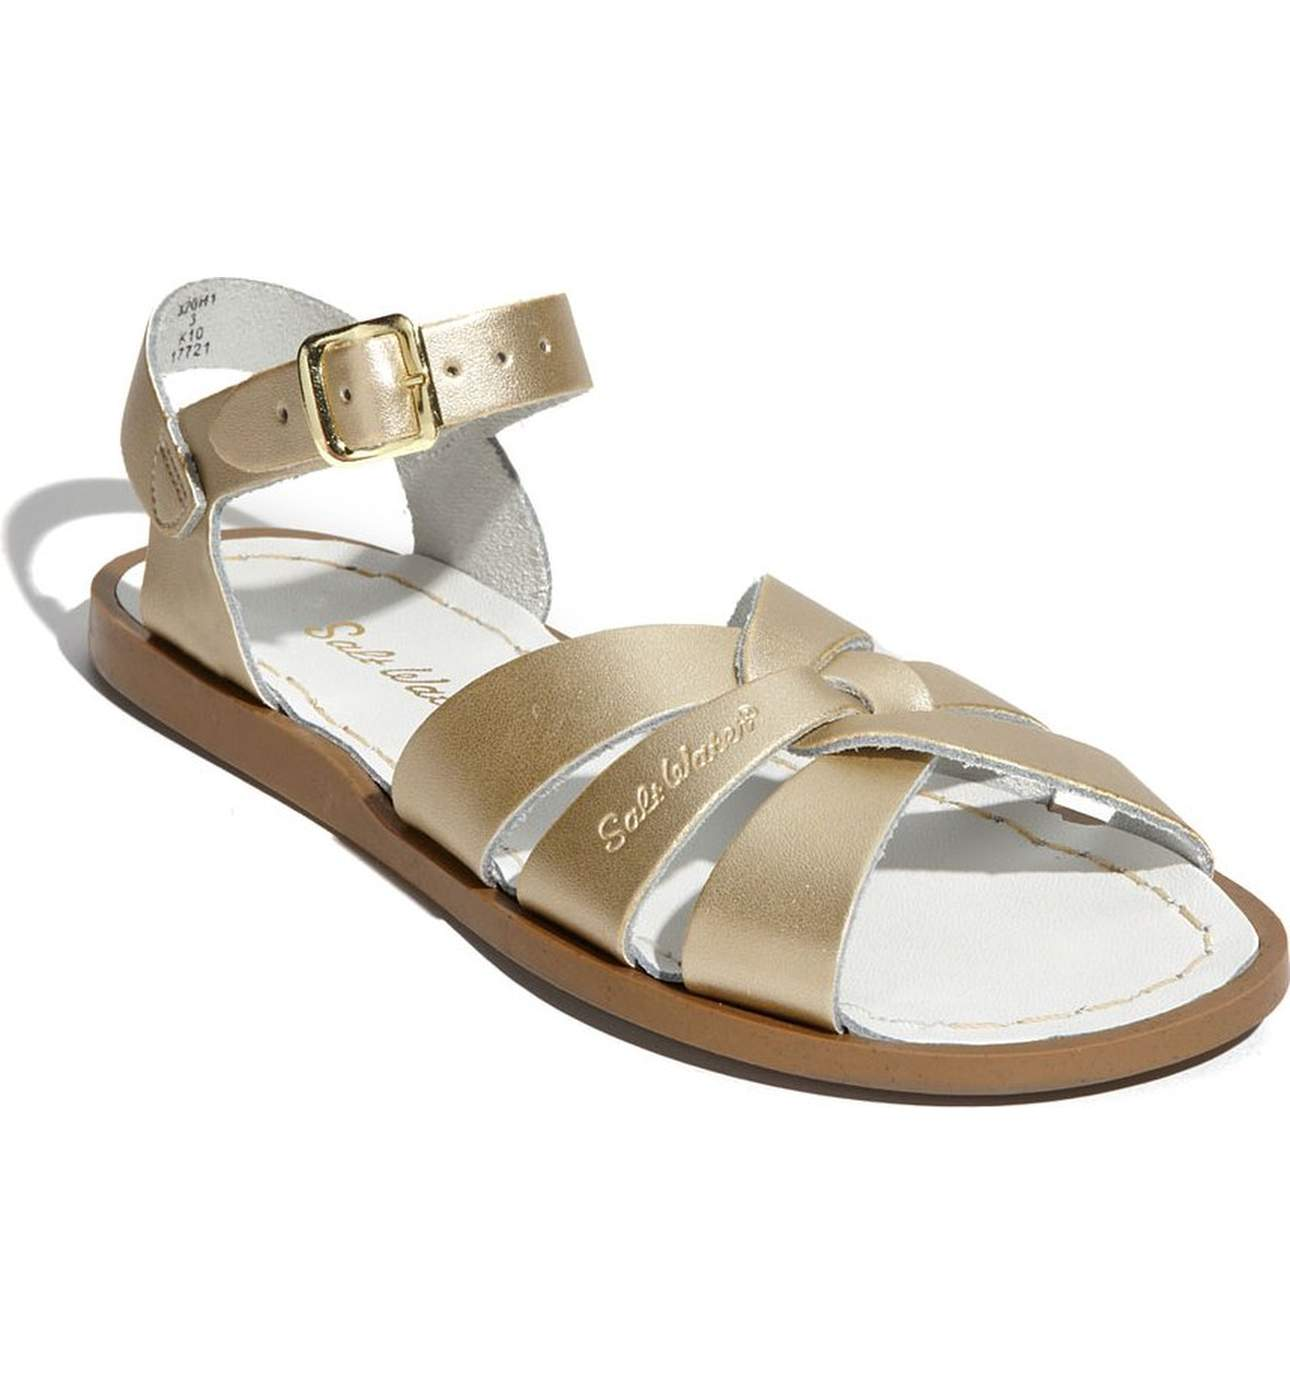 Lord knows, you can't go wrong with a Salt Water Sandal! Price: 44.95 at Nordstrom. (Image: Nordstrom){ }